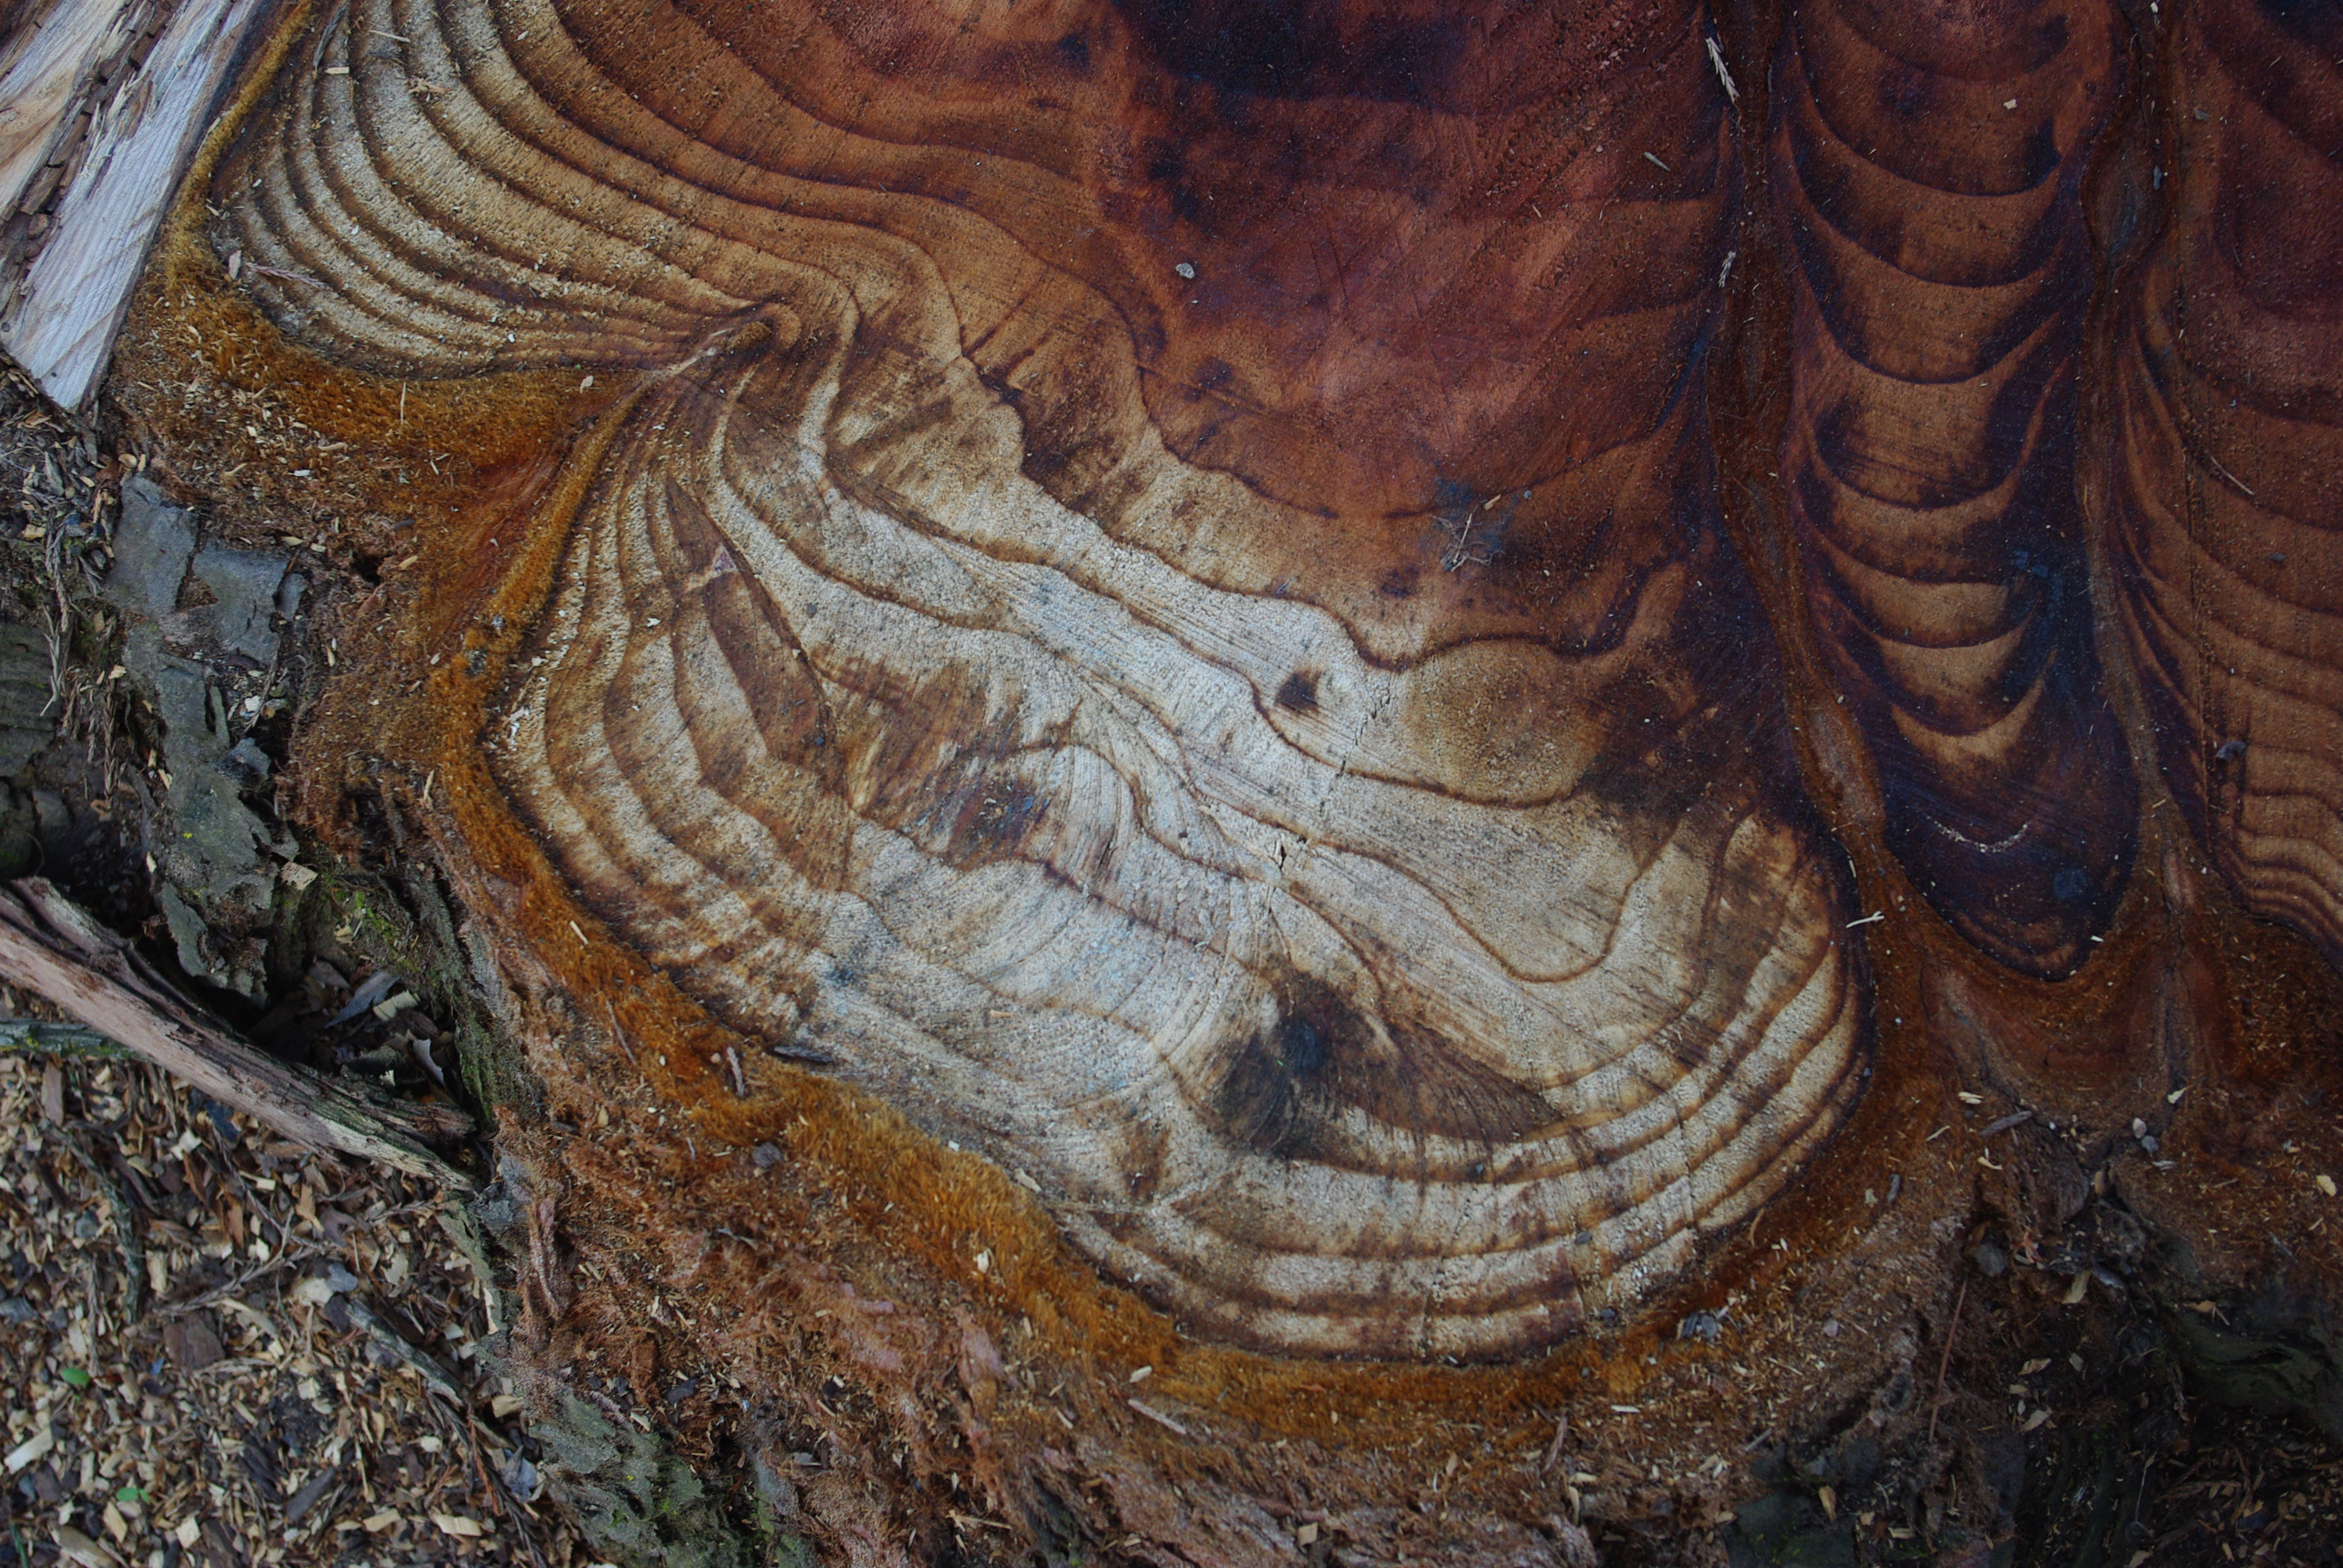 tree ring dating wikipedia Dendrochronology is the formal term for tree-ring dating, the science that uses the growth rings of trees as a detailed record of climatic change in a region, as well as a way to approximate.